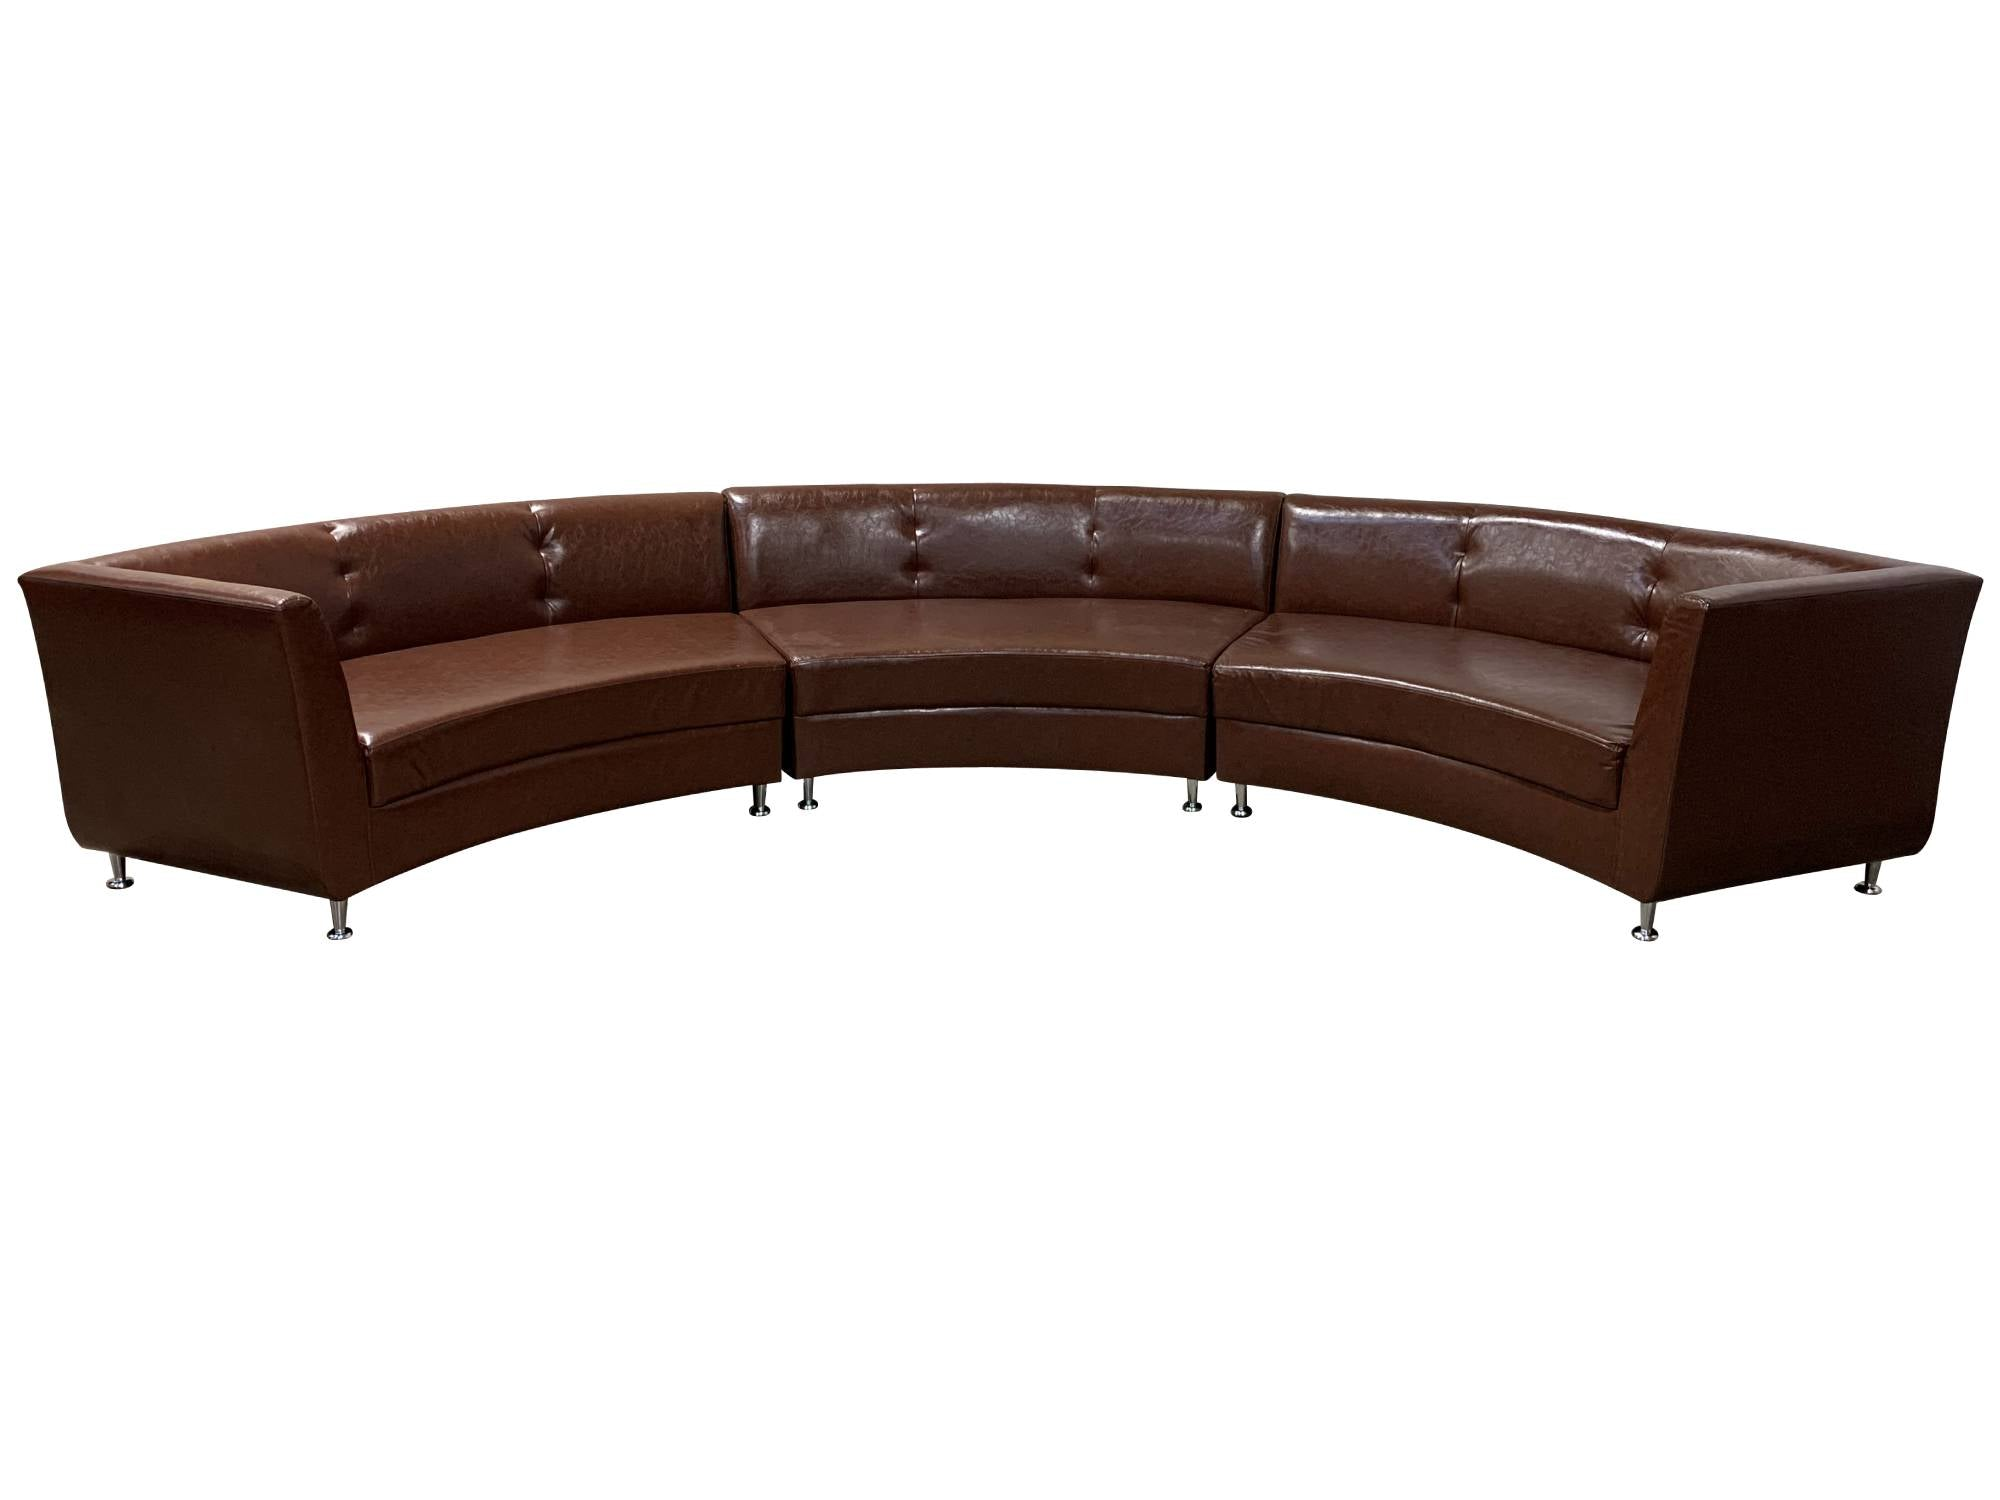 LUXURY 3PC CURVED SOFA - BROWN